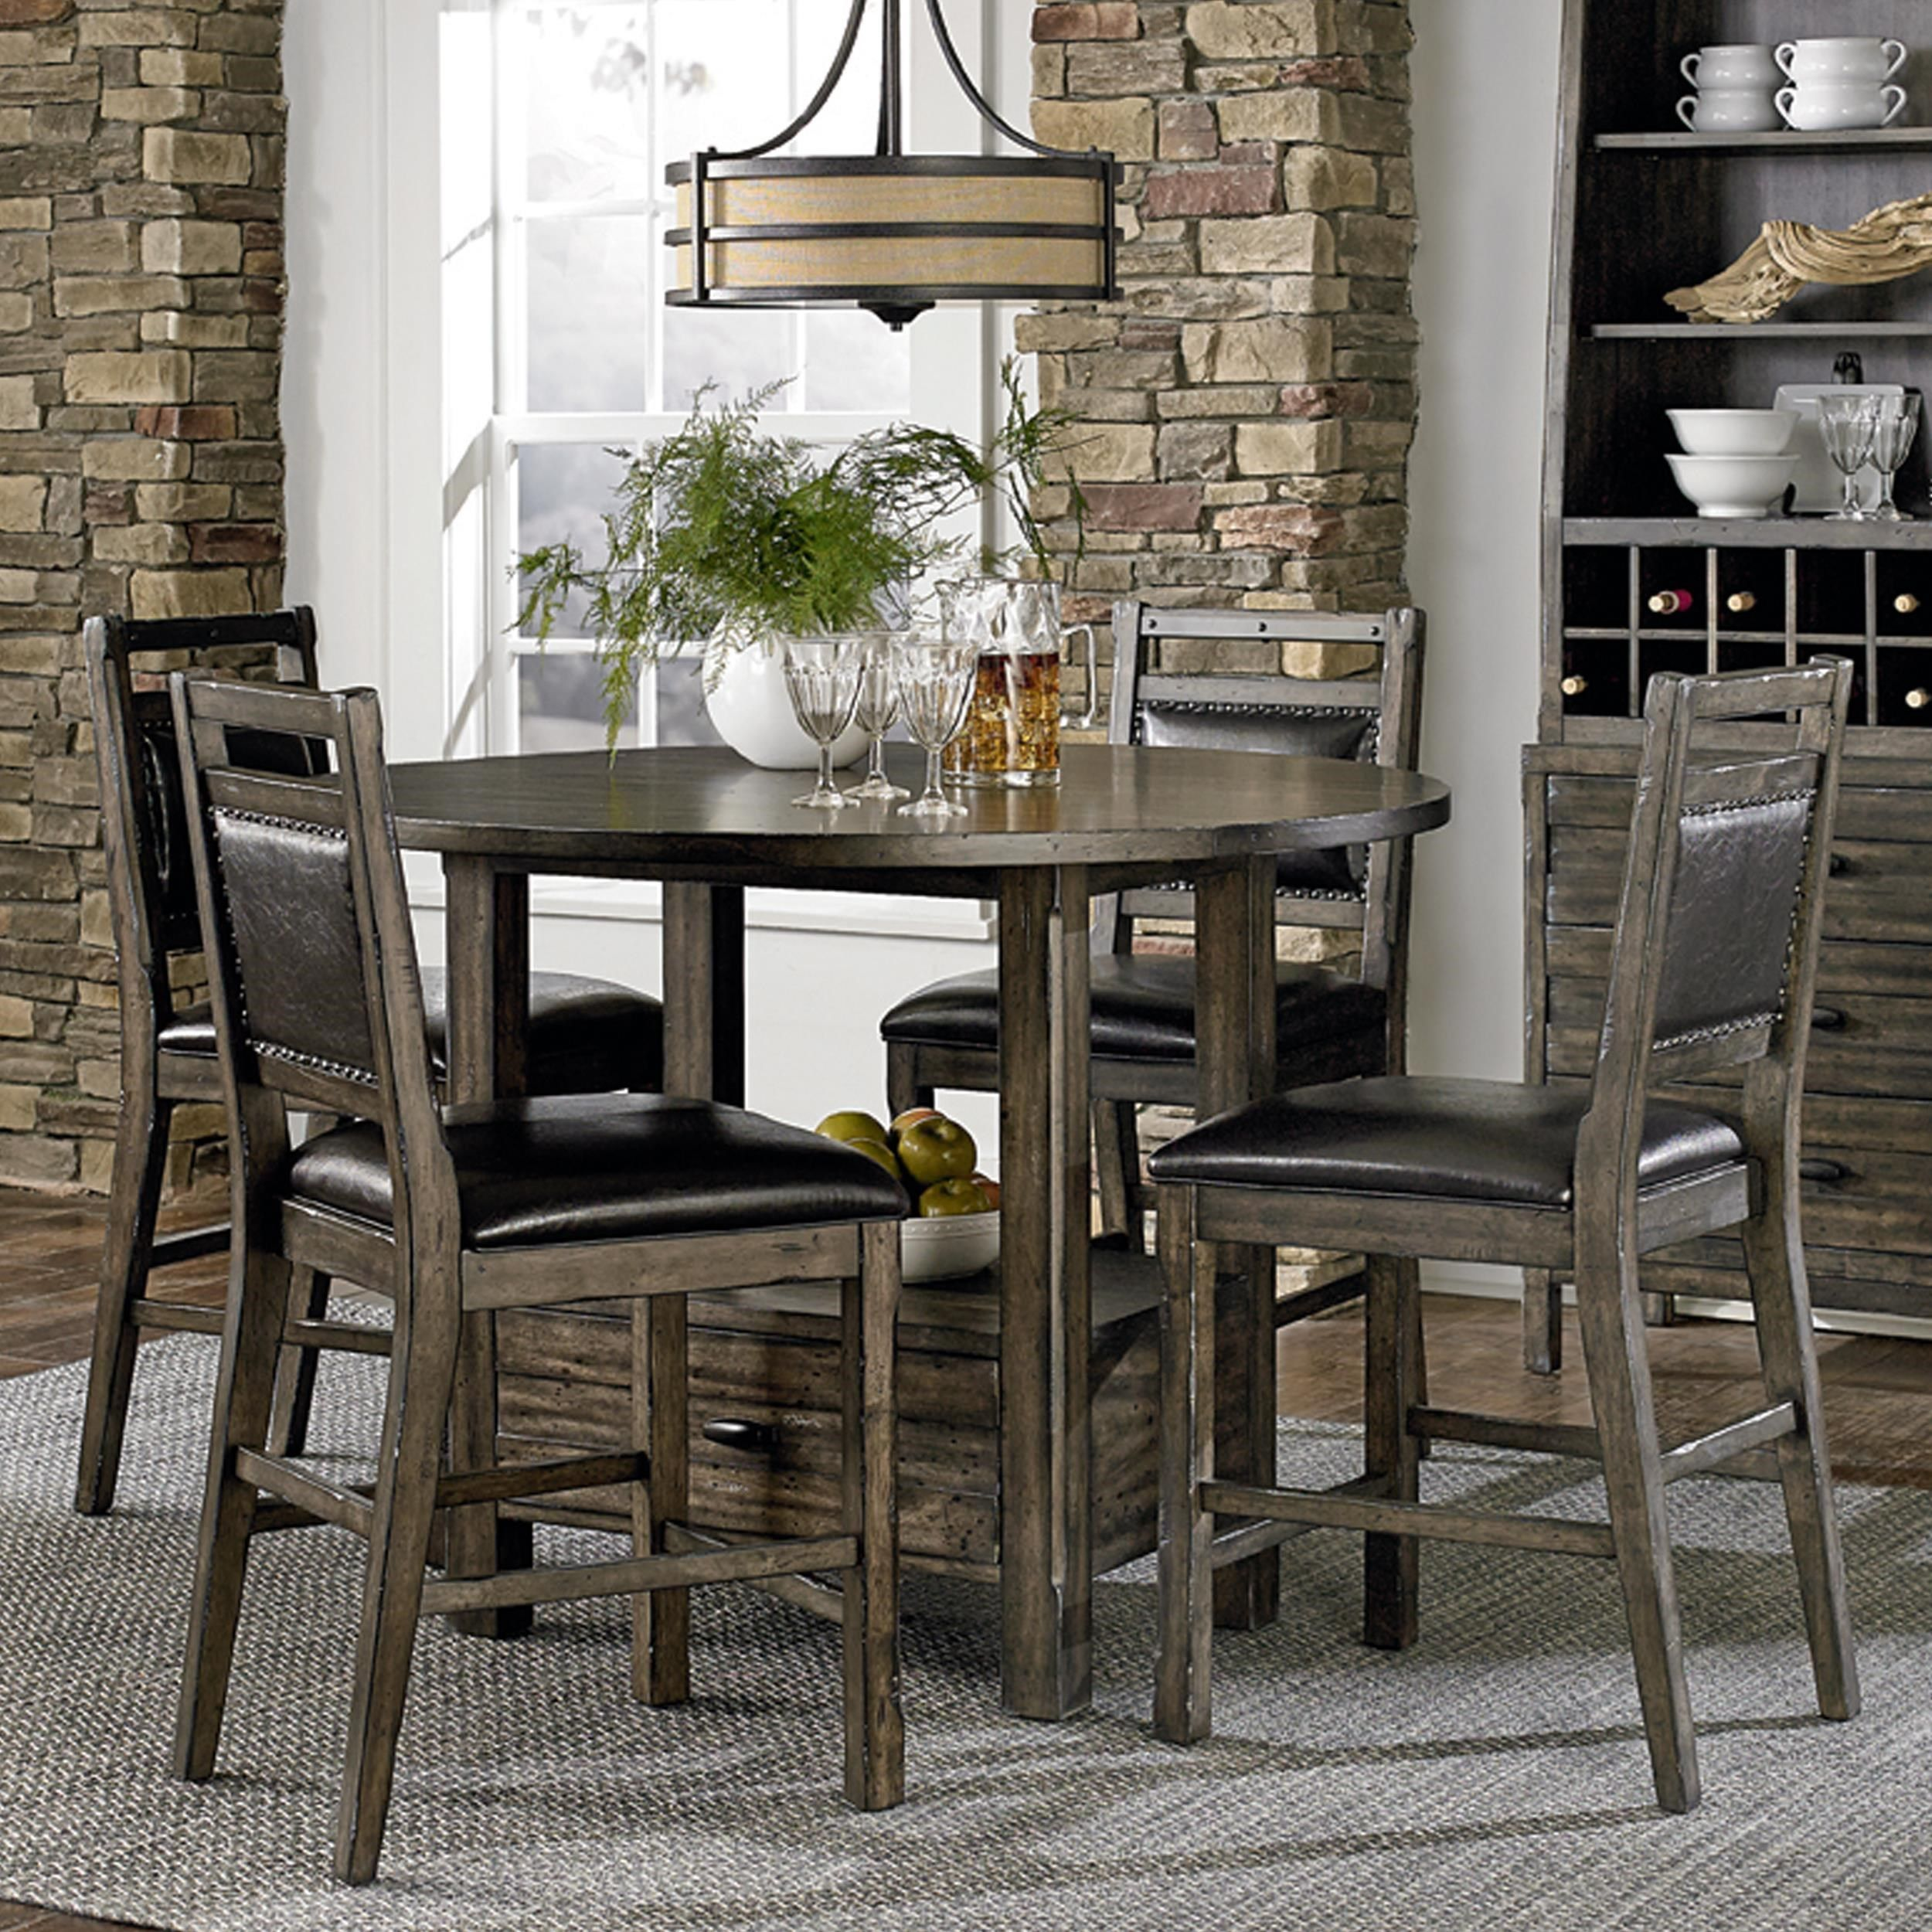 Rustic Abaco 5 Piece Counter Height Table Set By Progressive Furniture